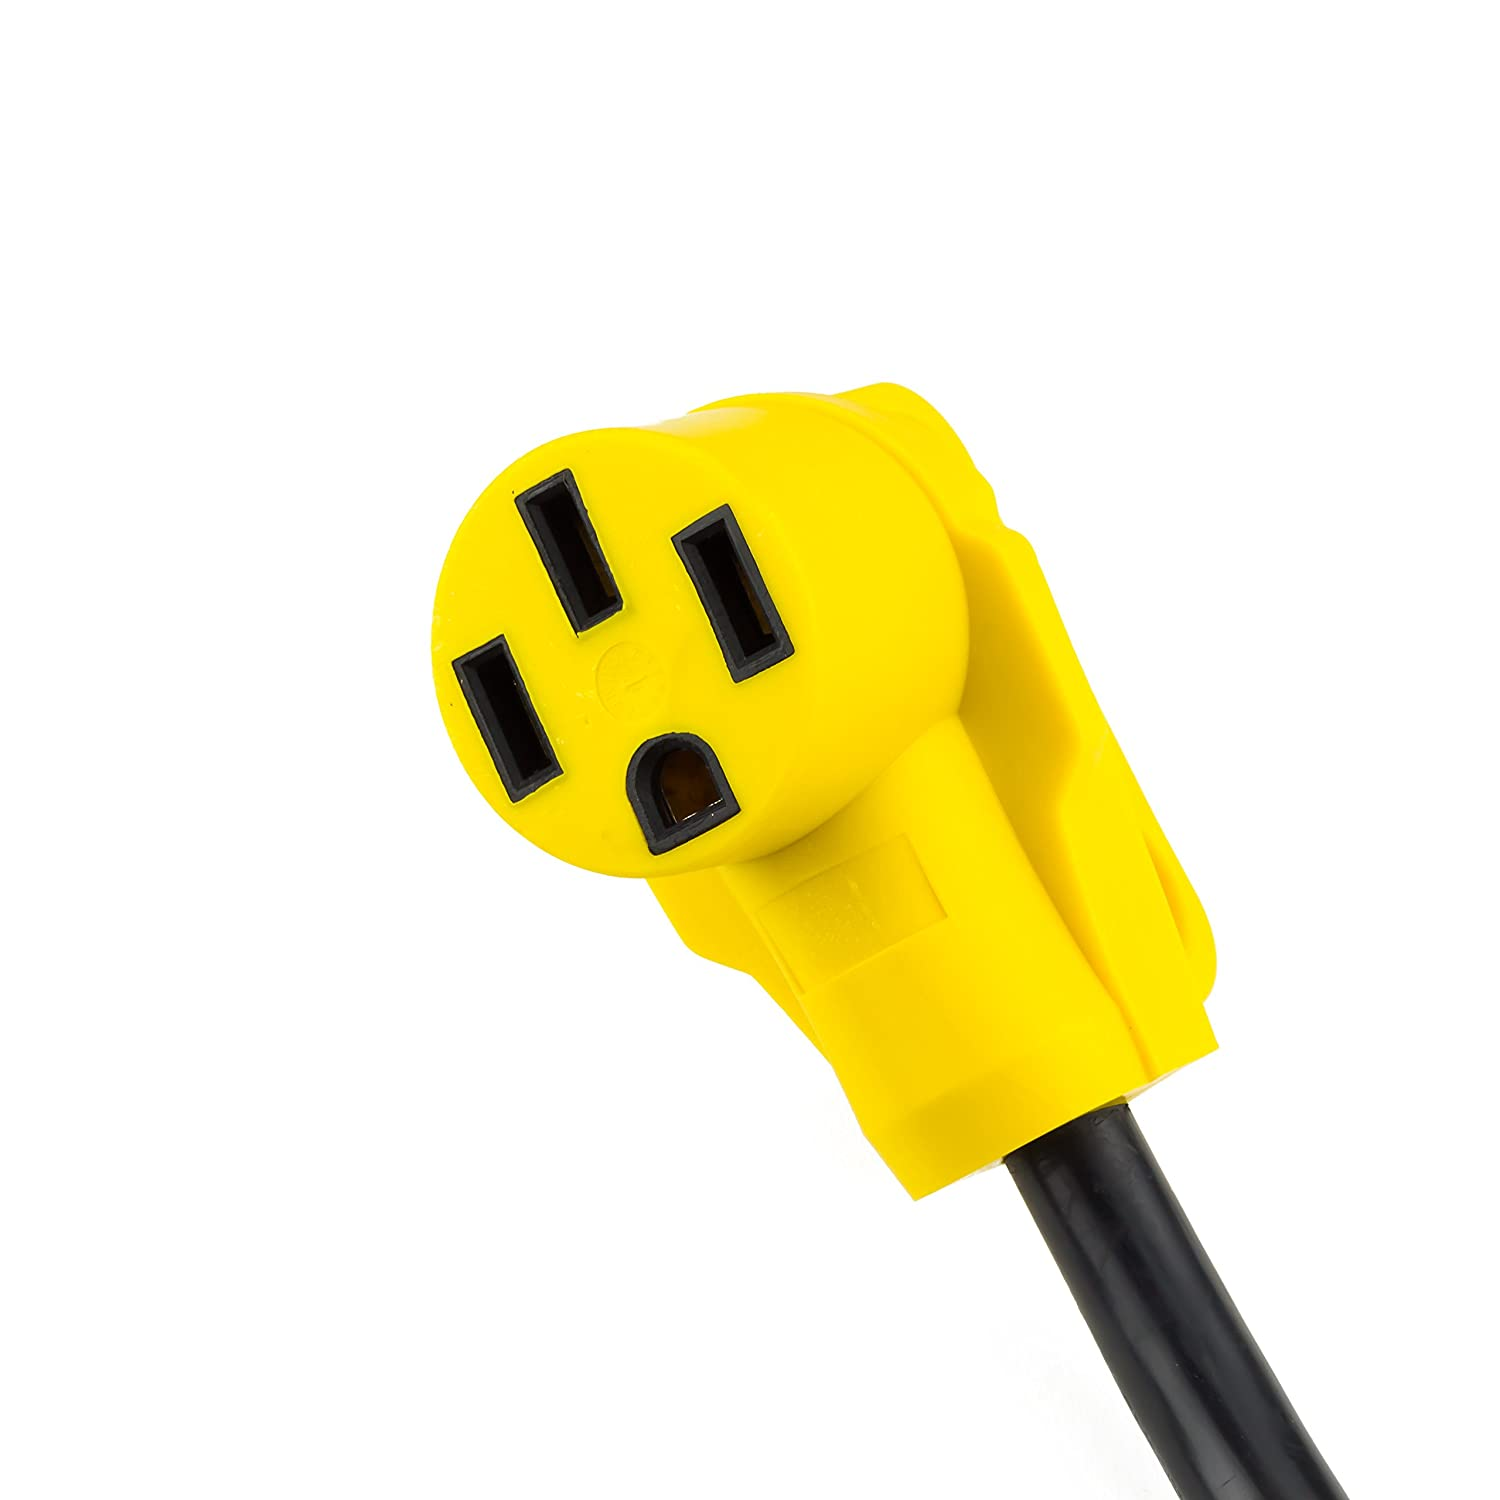 Proline Power RV Electrical Cord Adapter 15 Amp Female to 30 Amp Male with Easy Removal Handle